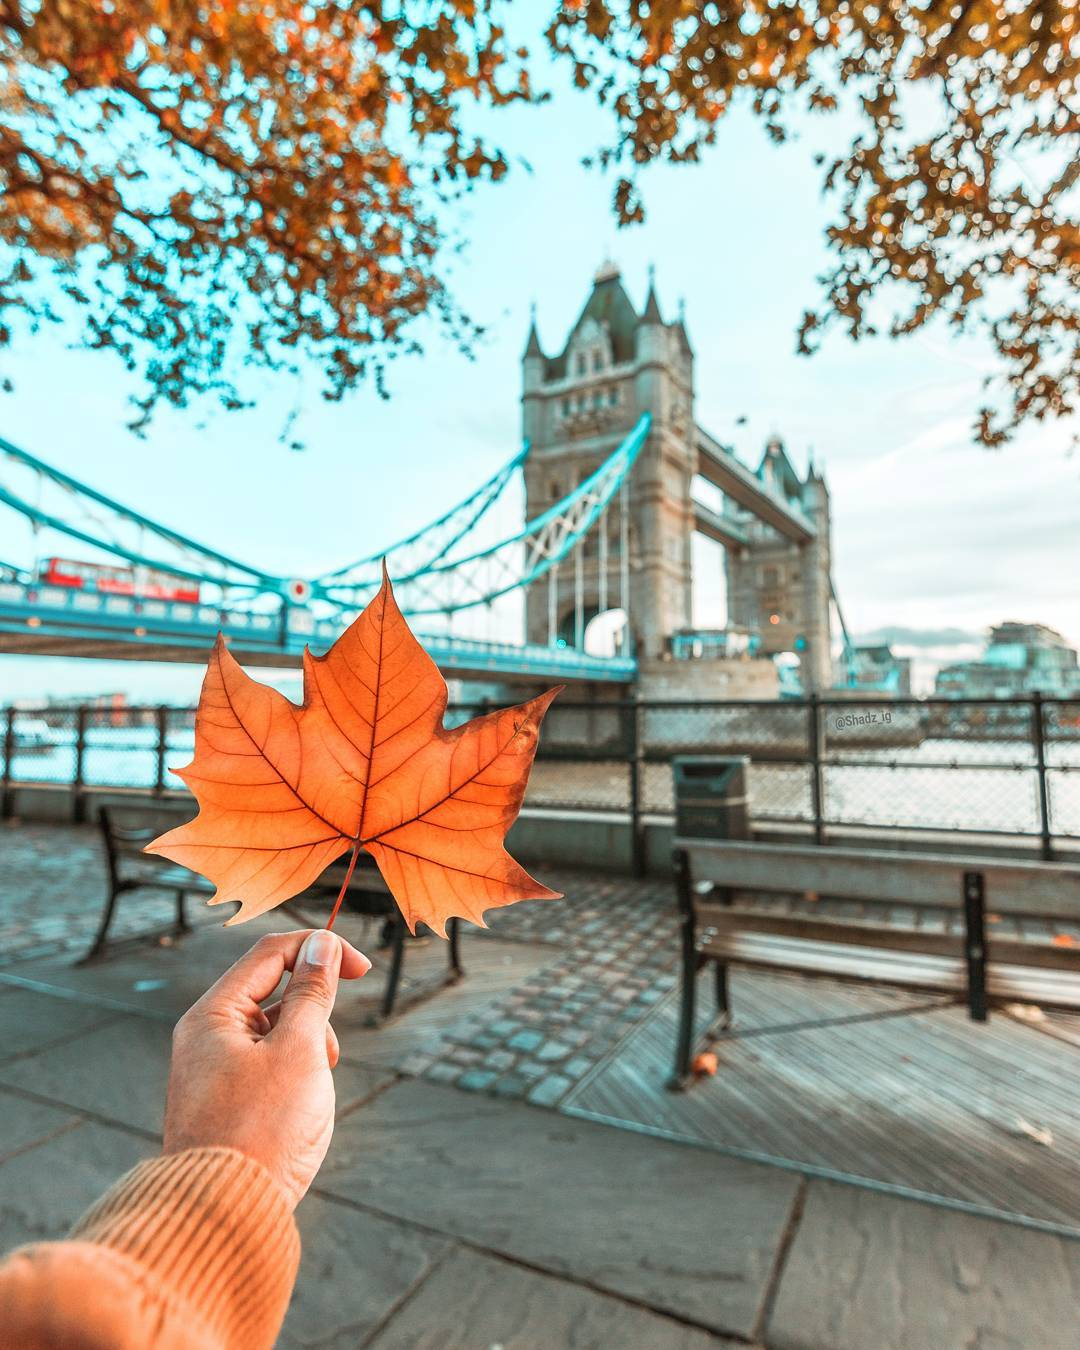 Autumn london tower bridge photo